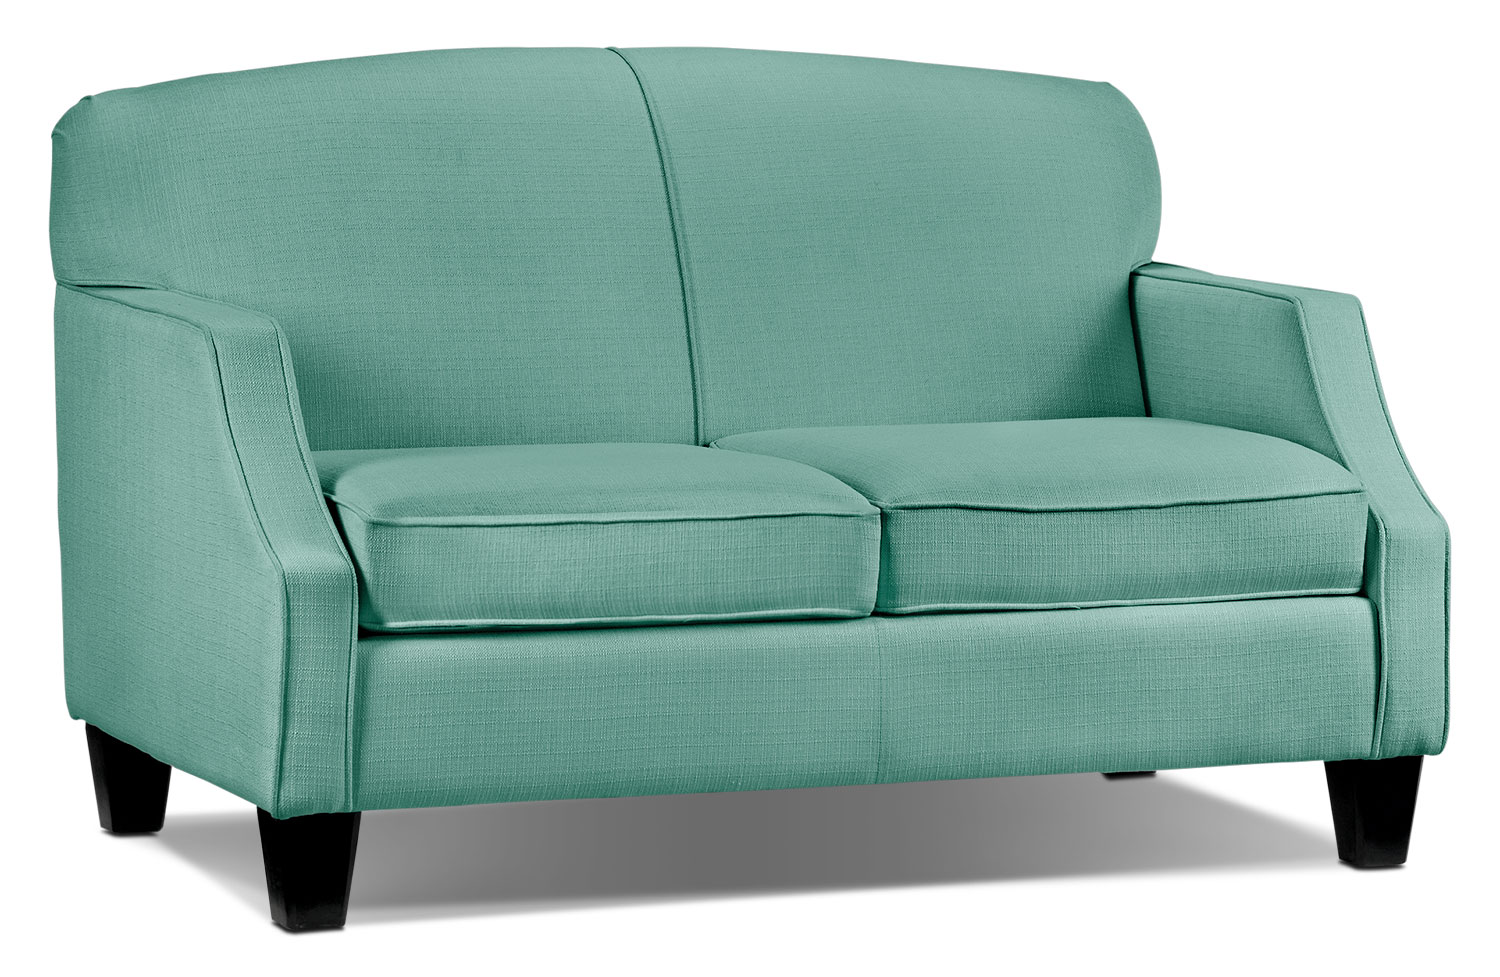 Living Room Furniture - Klein Loveseat - Laguna